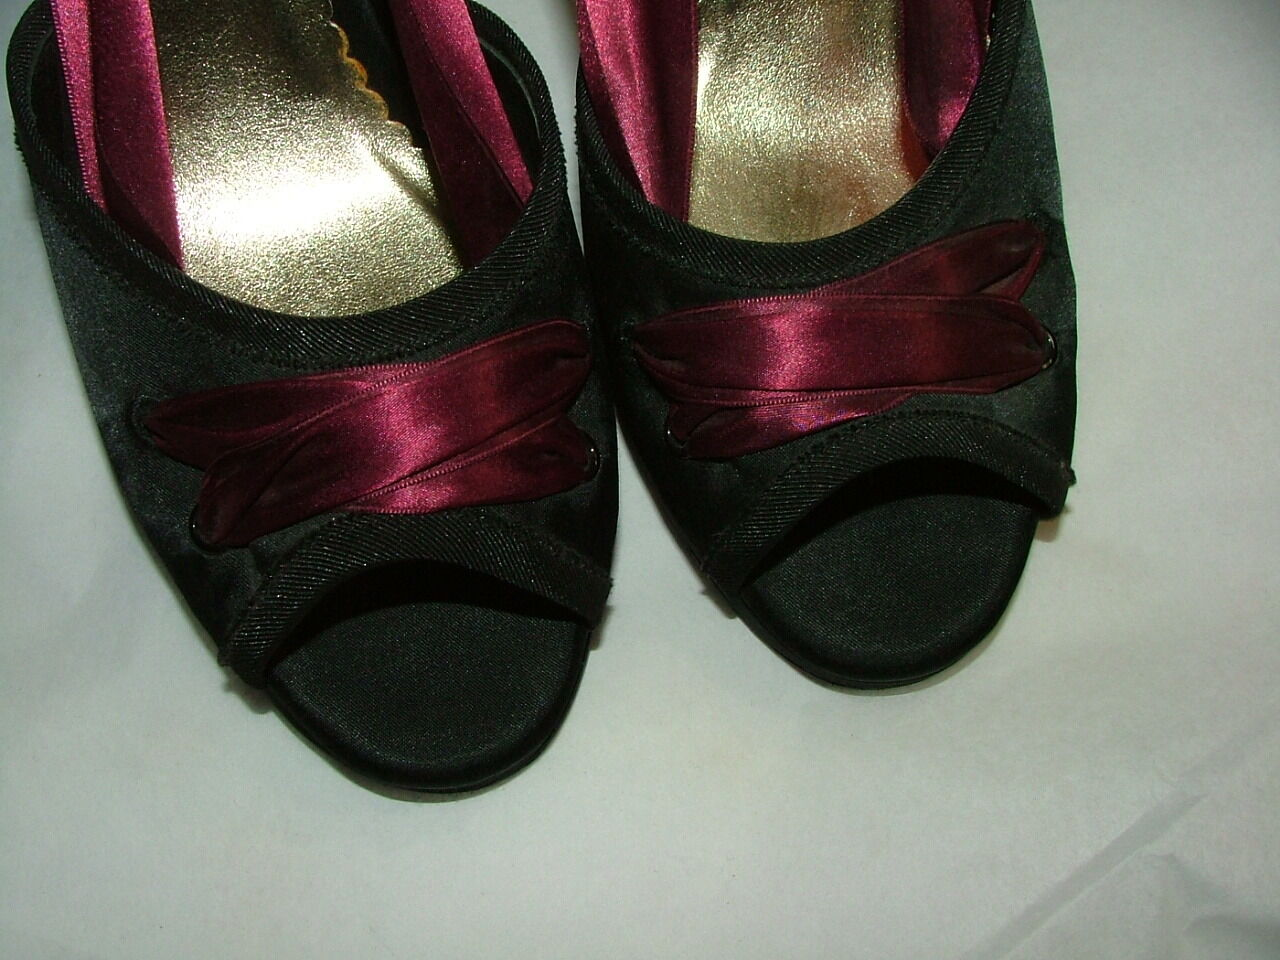 NEW WOB BEVERLY FELDMAN CLASSICS PUMPS SIZE 8 8 8 1 2 M BLACK RED SATIN  015 6ca676